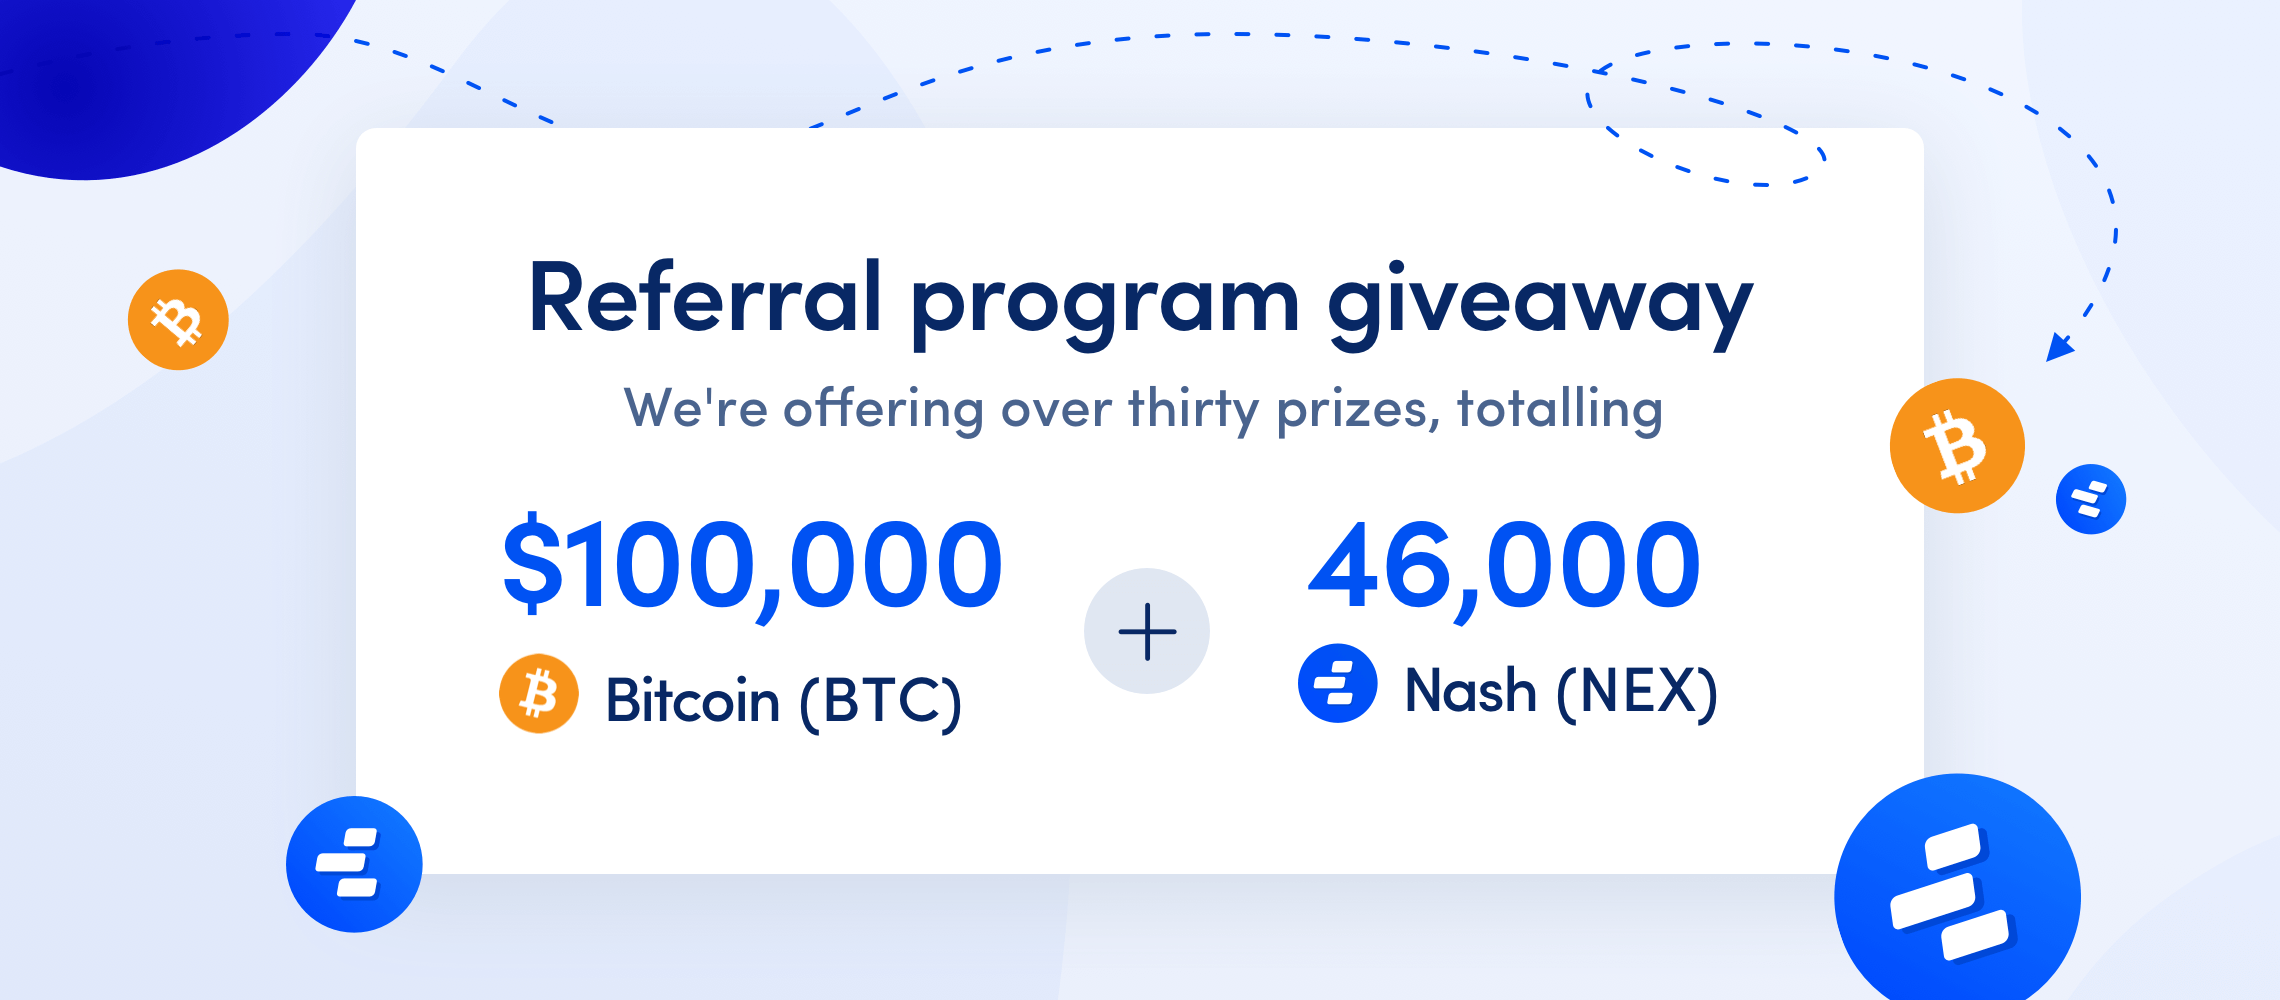 Win up to $100,000 in Bitcoin with the Nash referral giveaway!